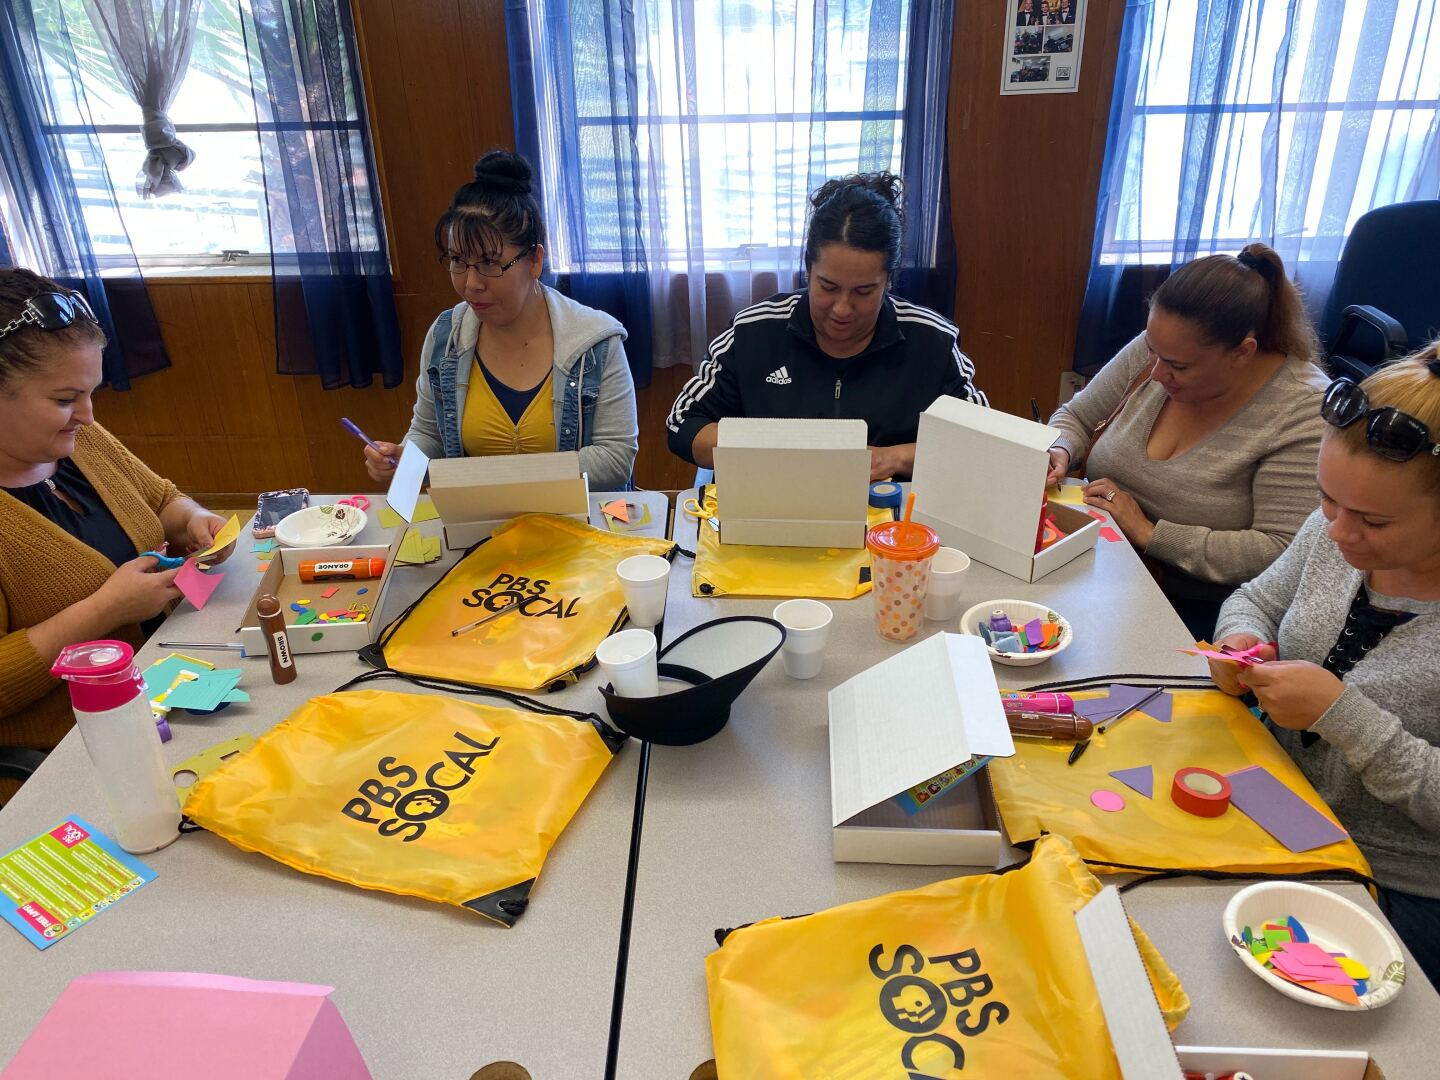 A group of moms participating in a Family Math Parent Workshop at McKinley Elementary in Compton, CA (January 2020).